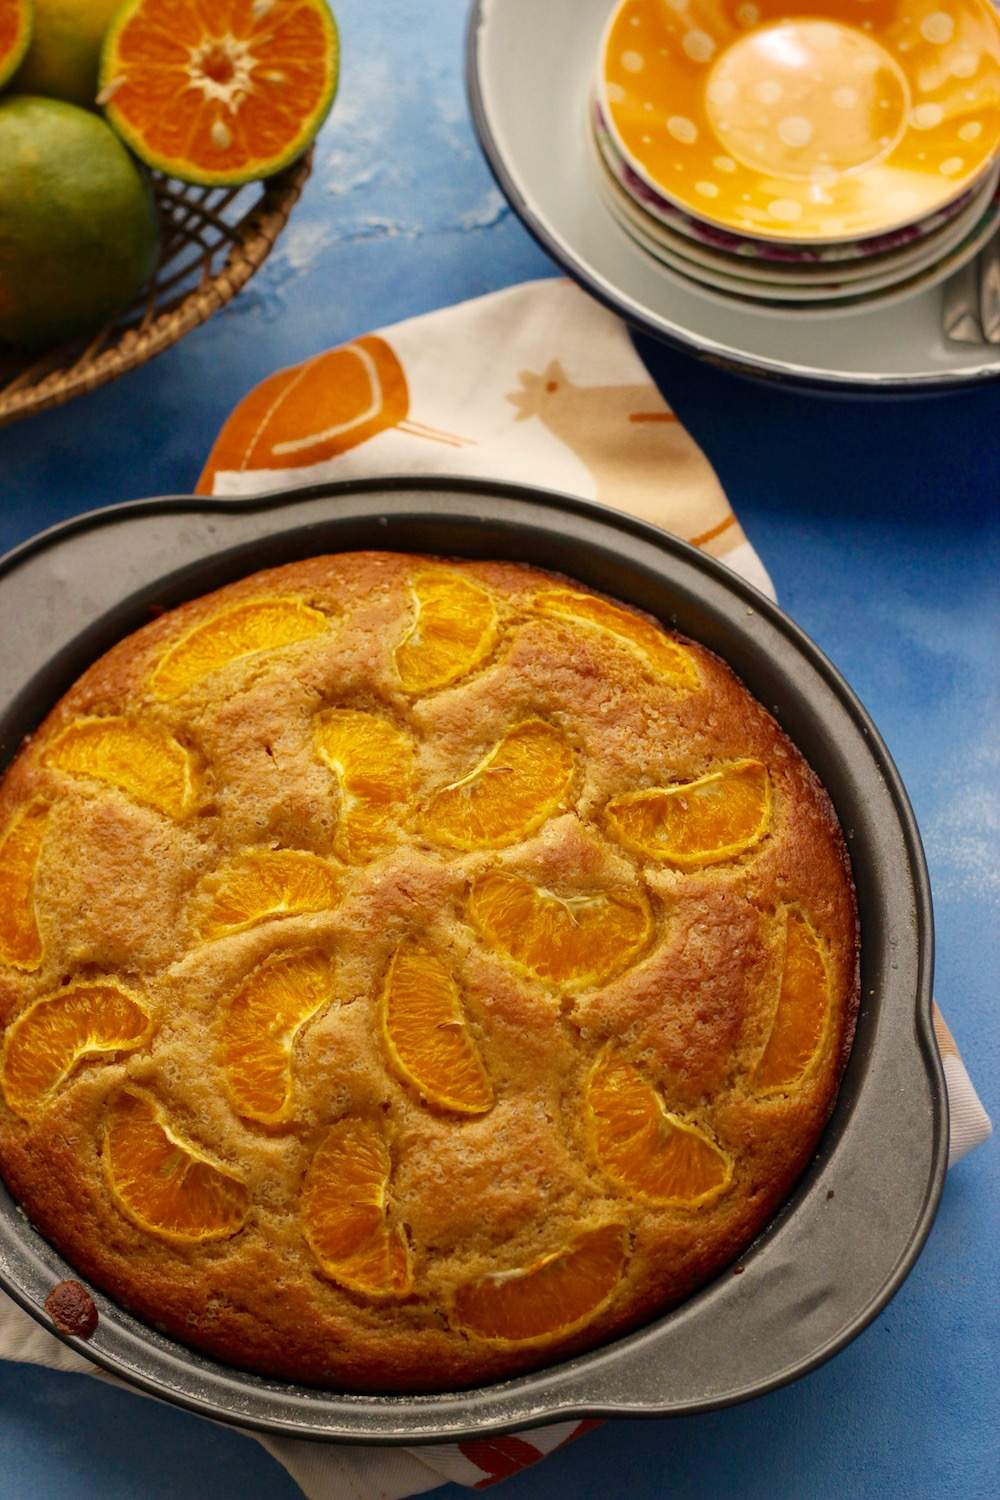 mandarin orange cake made using whole wheat flour and olive oil